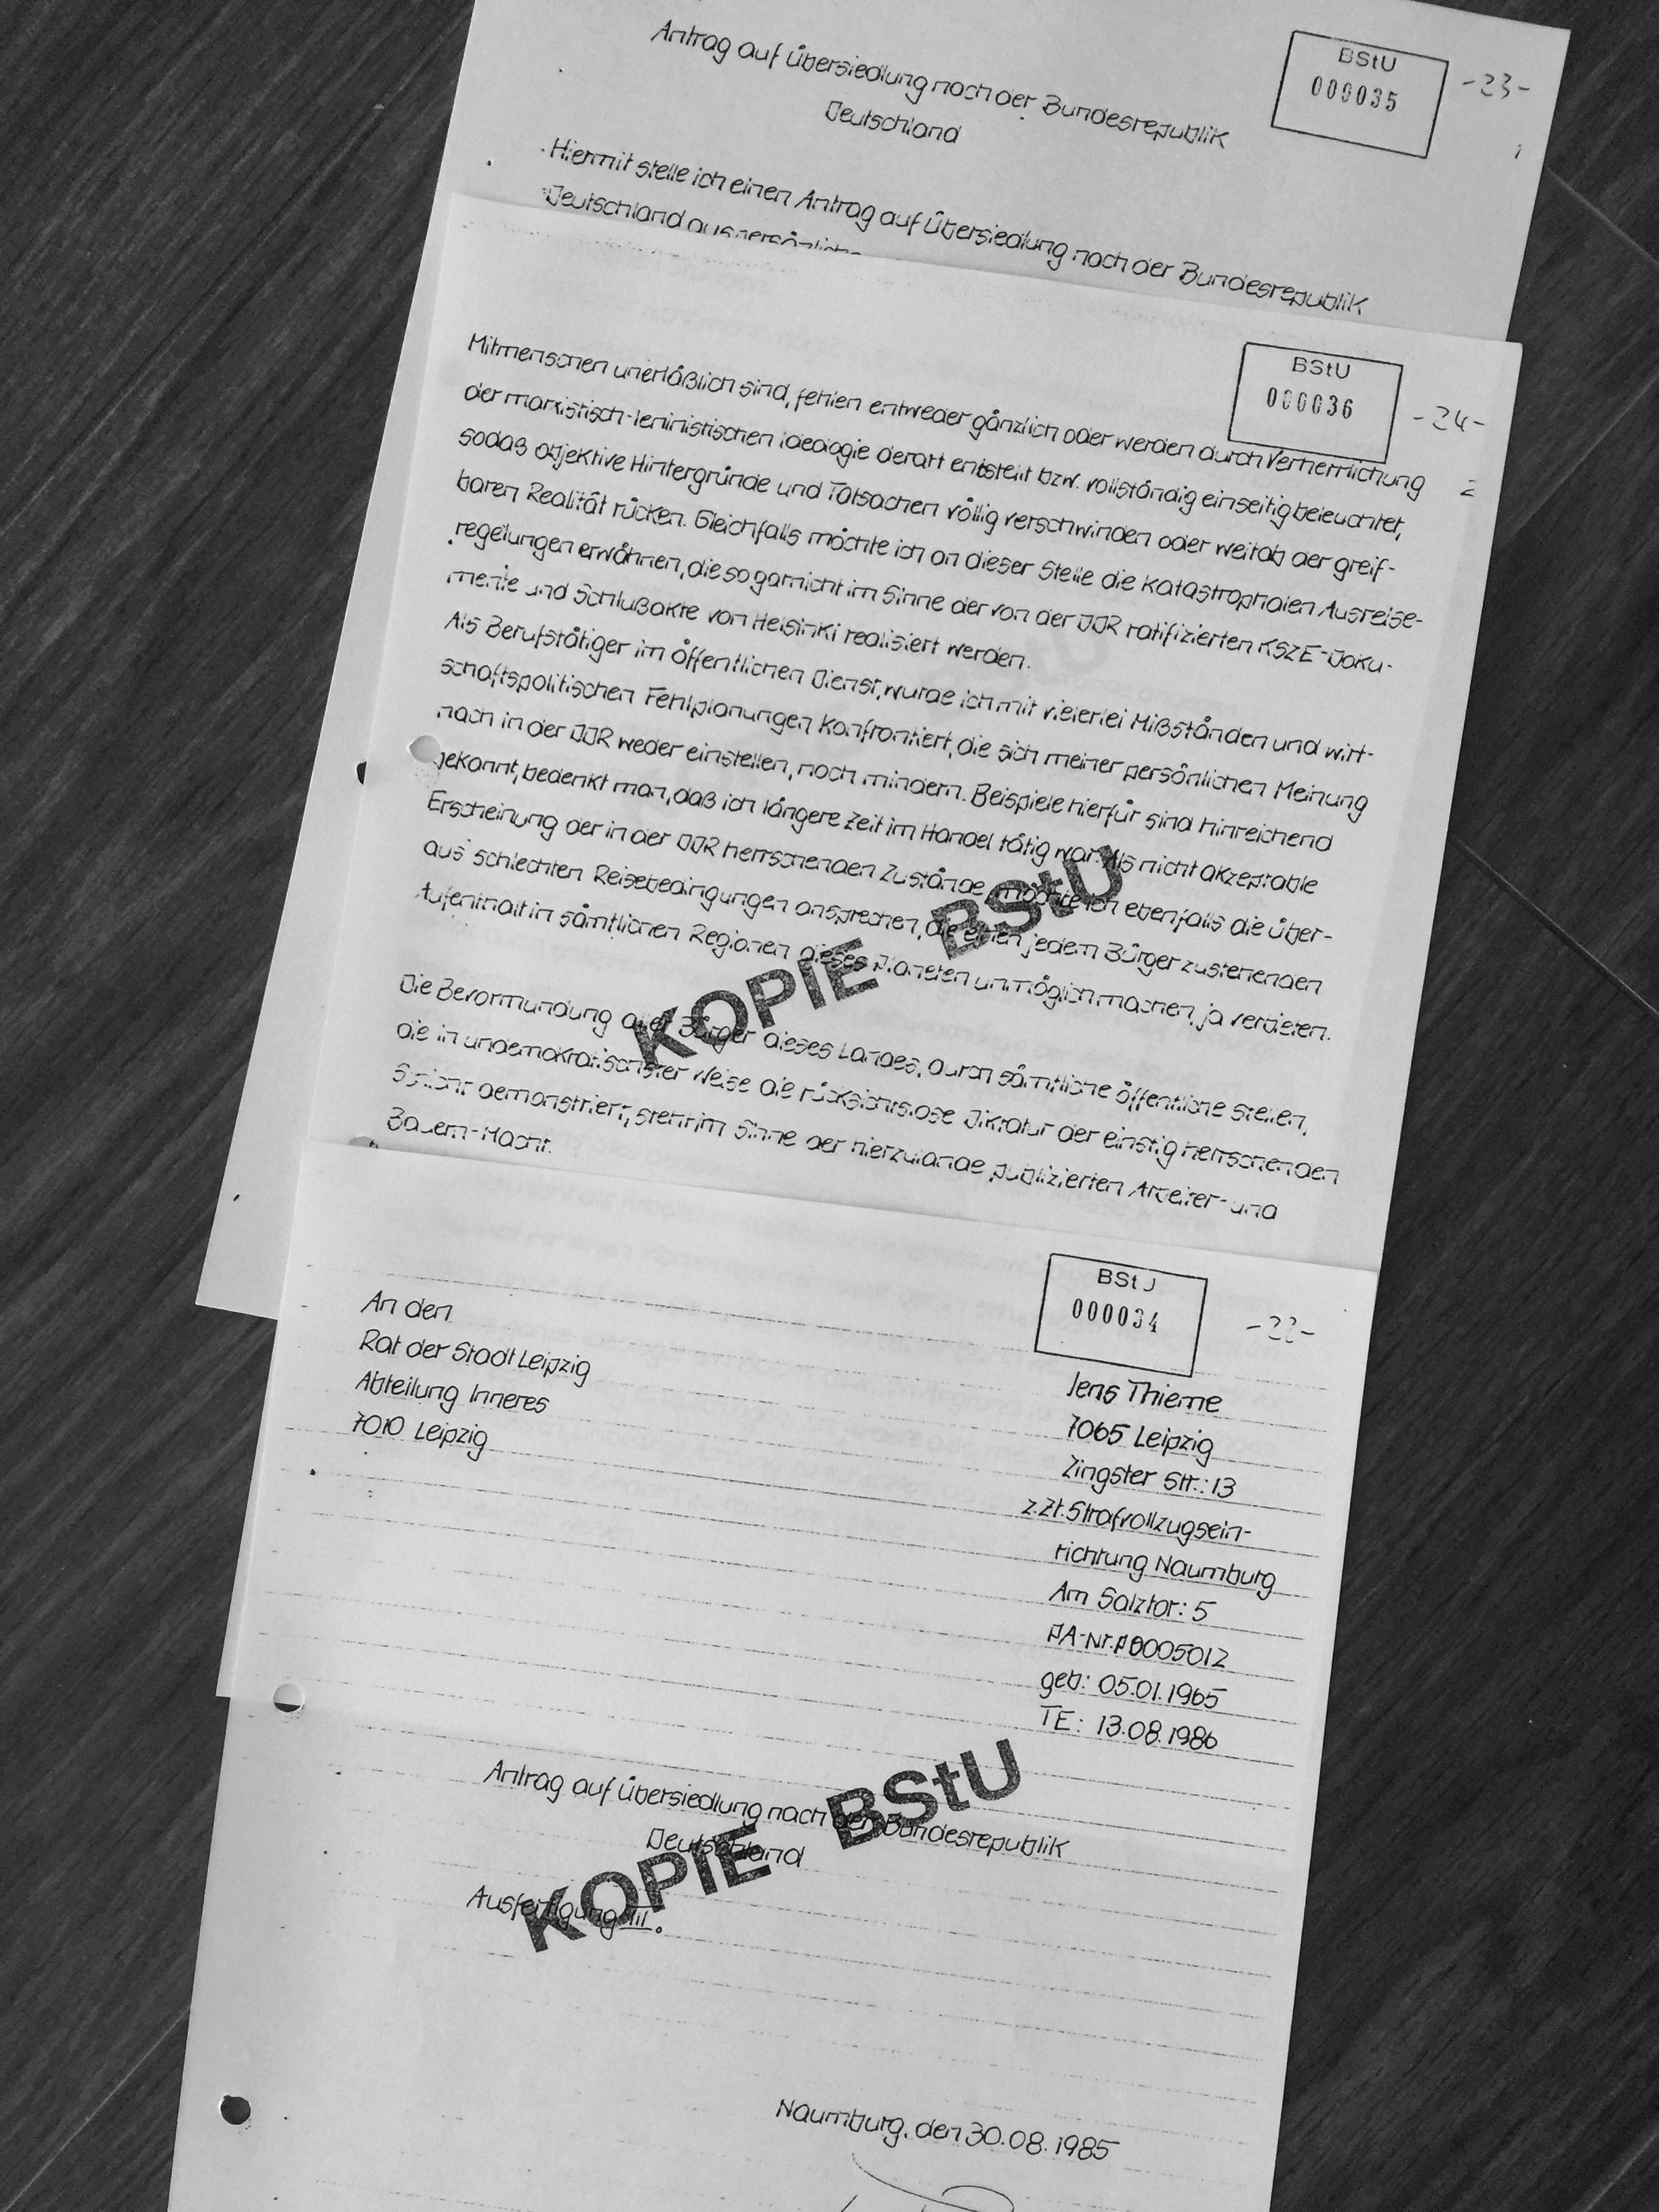 One of three 'emigration applications' which only served one purpose in the GDR: make known that you are unwilling to continue your life in that country. It marked people and set them up for repression and road blocks and for surveillance by the Stasi. Officially those applications should not have been necessary as the GDR ratified all international treaties to guarantee freedom and liberty. Of course everyone knew that this was ignored and violated by the regime.